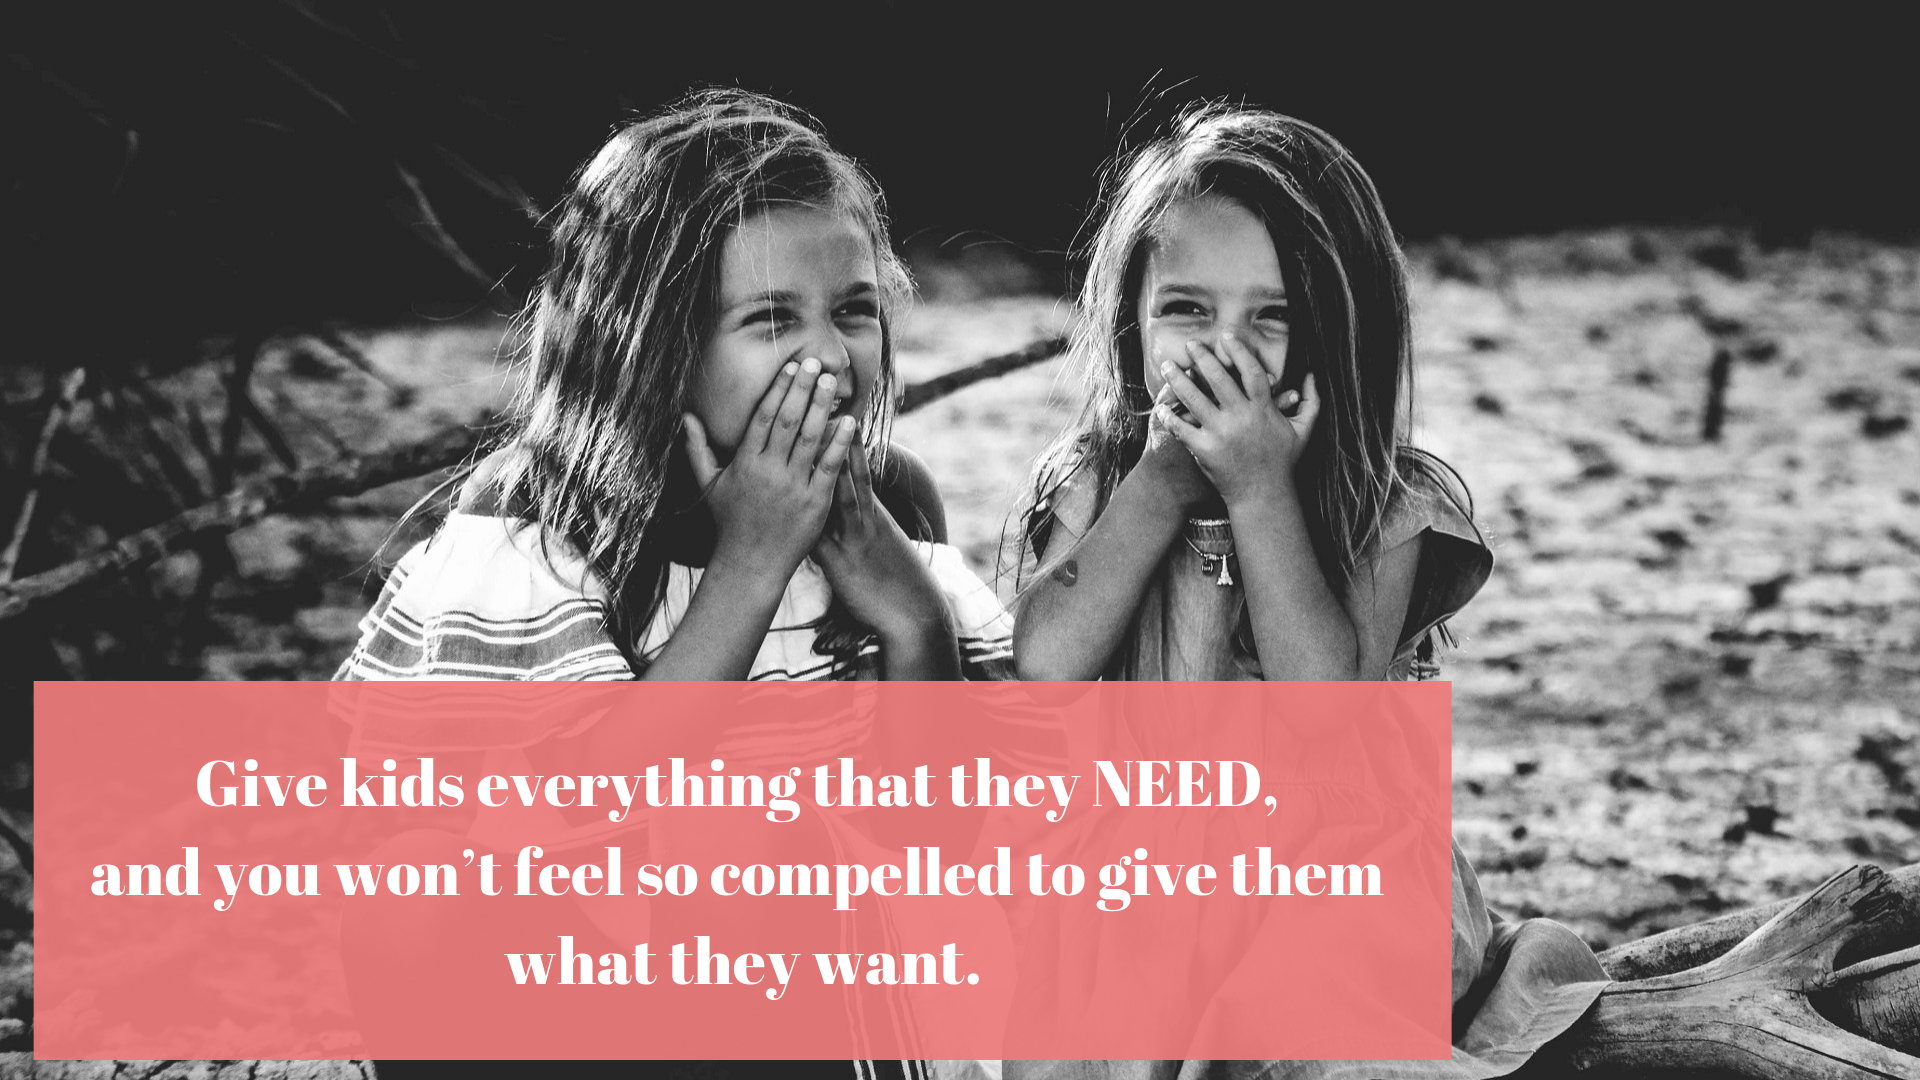 Give kids everything that they NEED, and you won't feel so compelled to give them what they want.